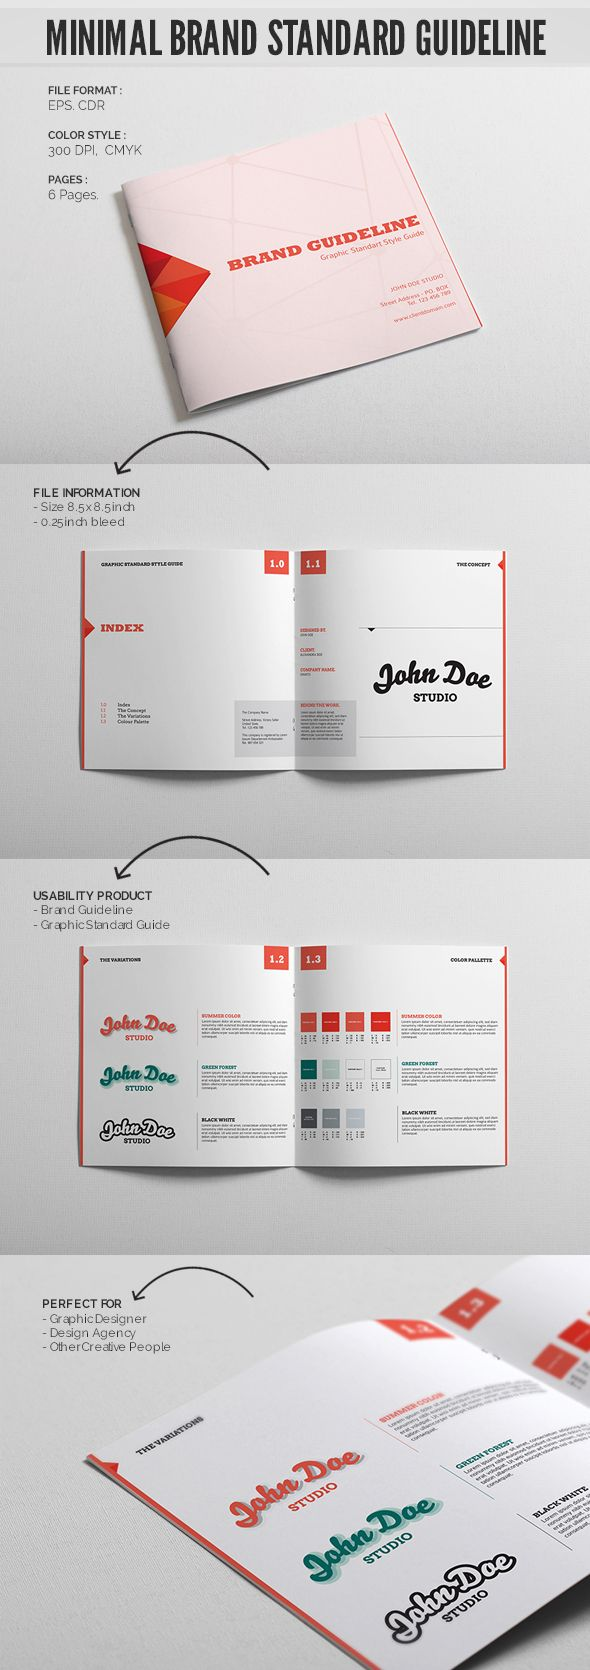 Brand Guideline Template on Behance.